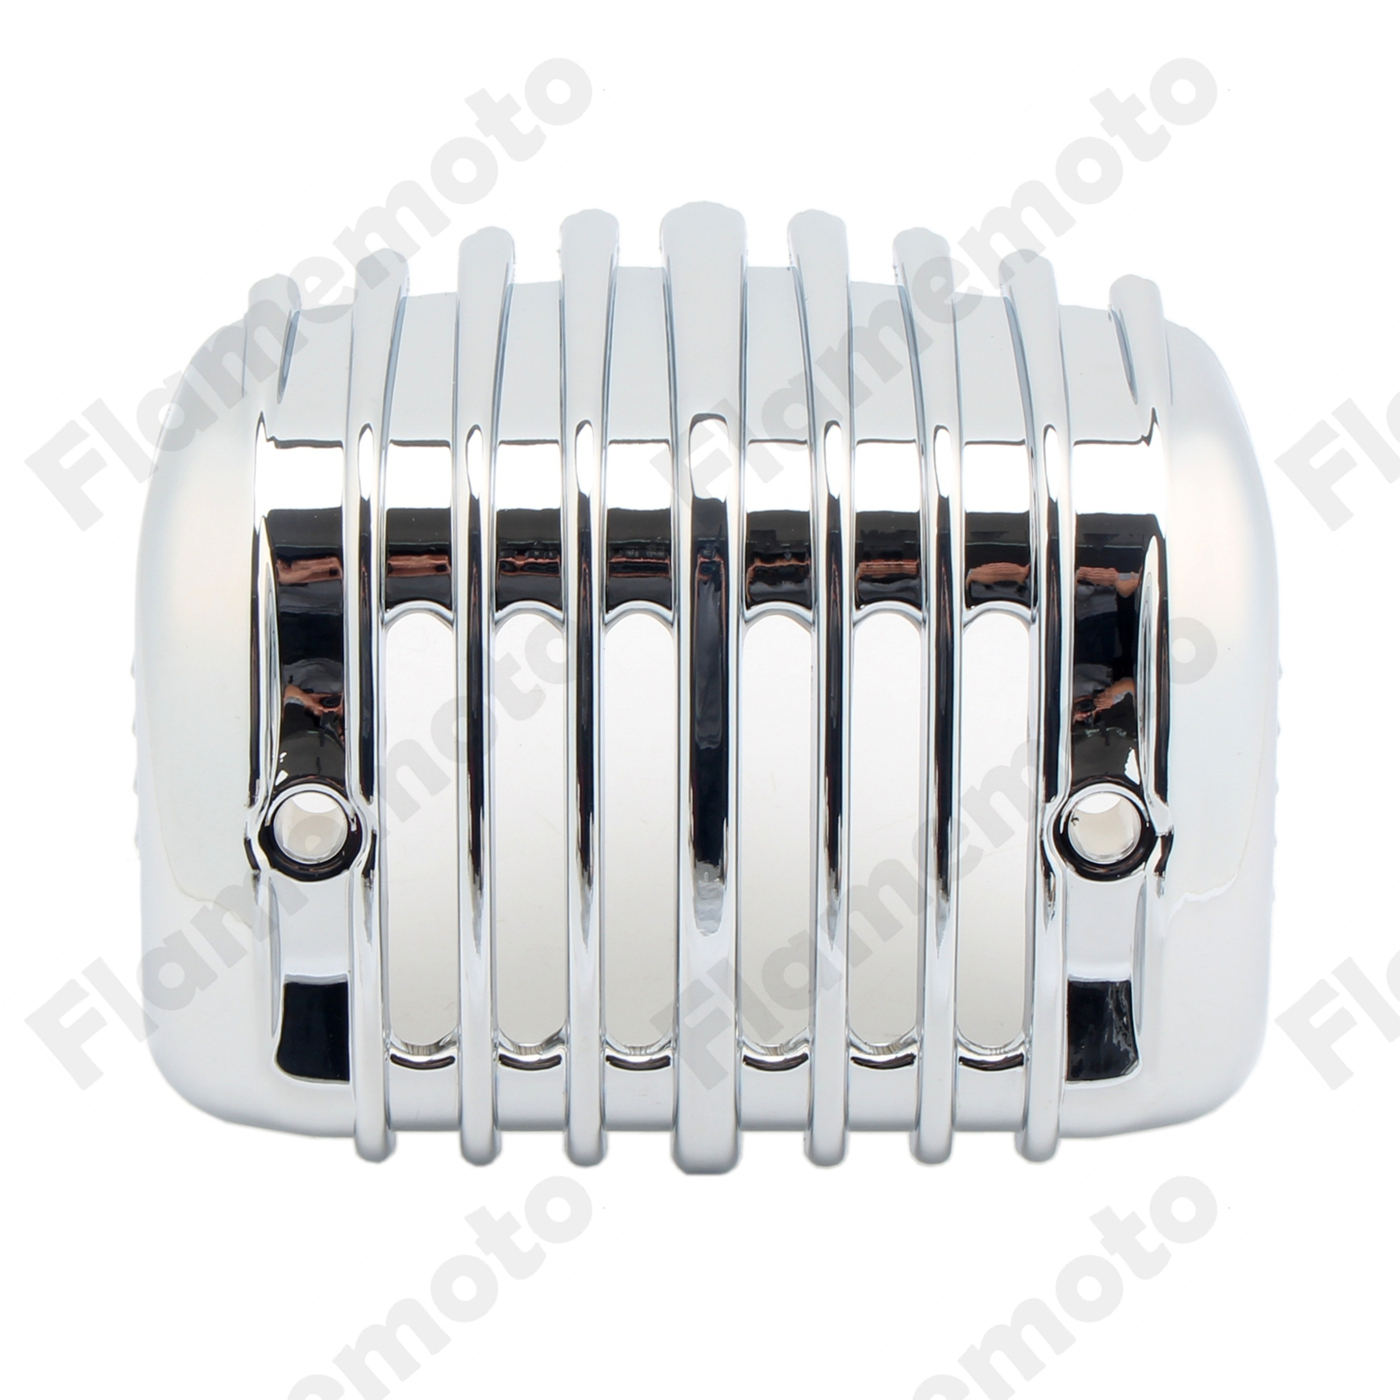 Motorcycle Parts Chrome Voltage Regulator Cover For Harley Heritage Softail Classic FLSTC 2001 2002 2003 2004 2005 2006-2017 chrome custom motorcycle skeleton mirrors for harley davidson softail heritage classic